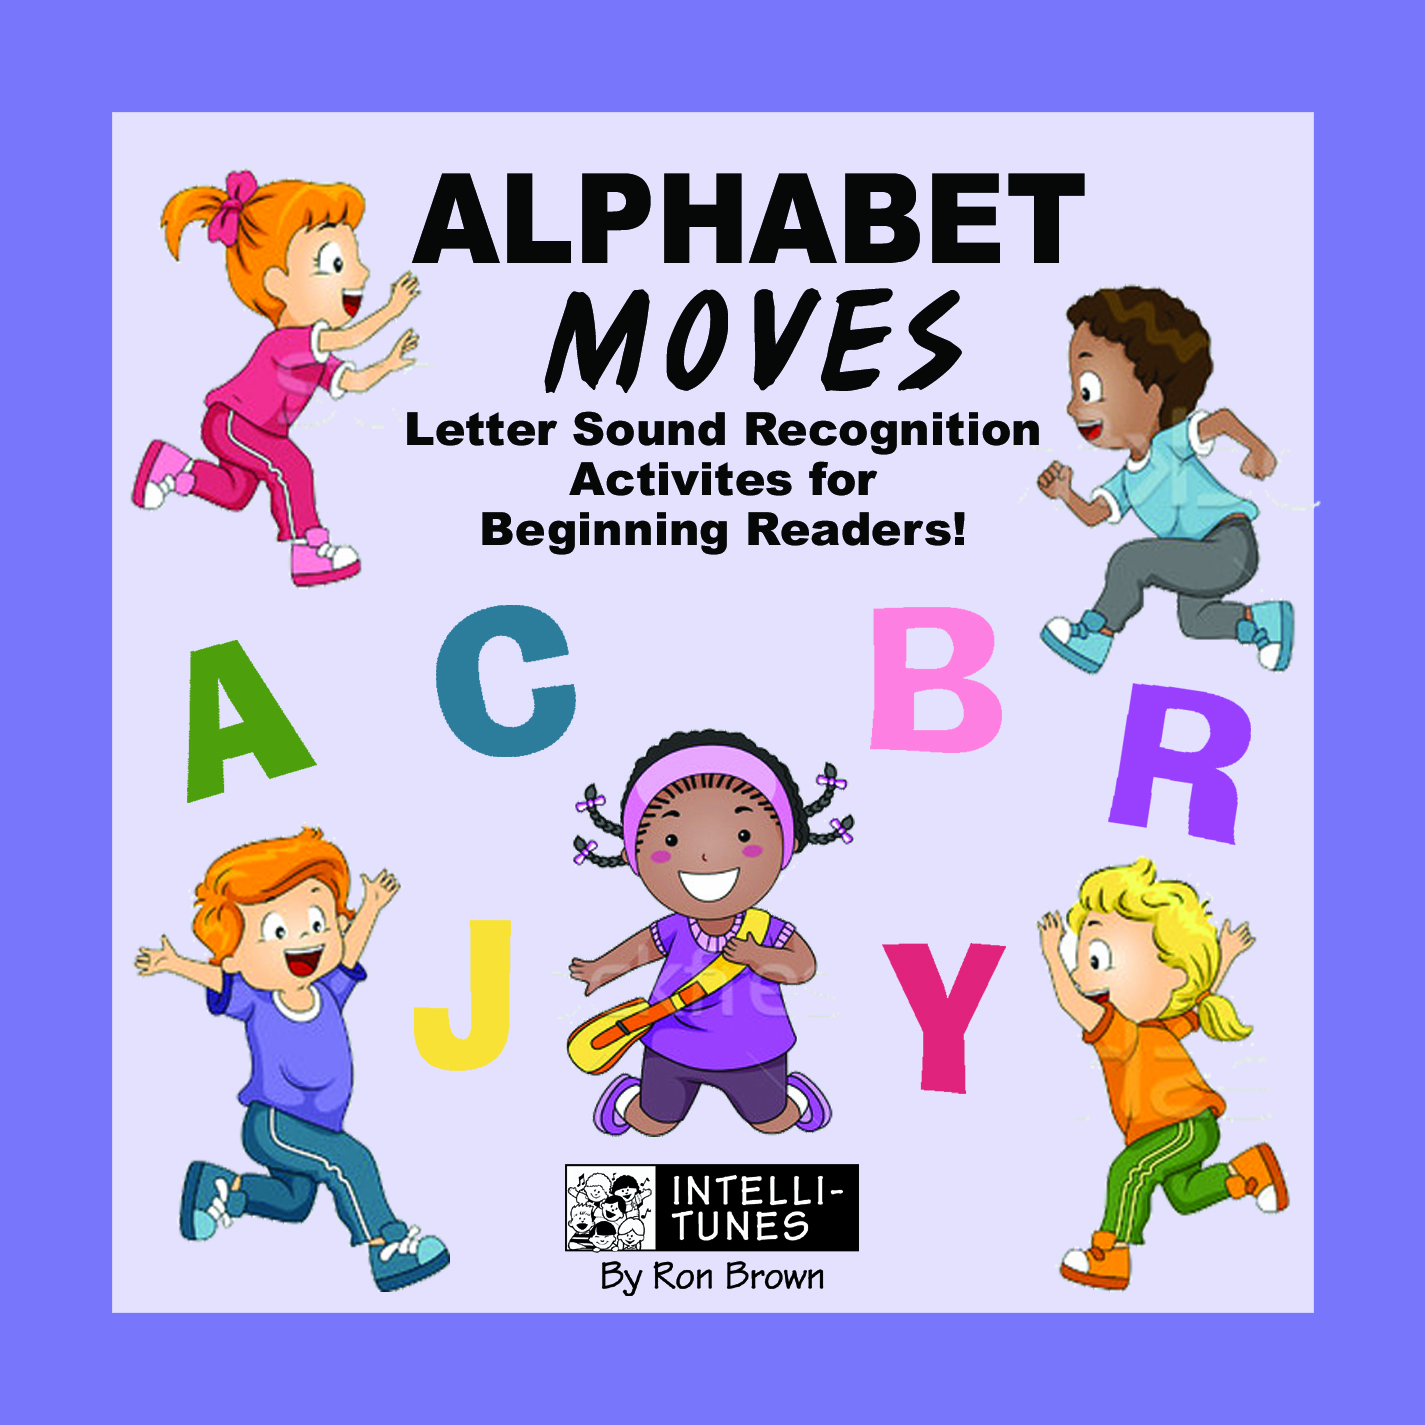 Alphabet Moves Album Download with Lyrics